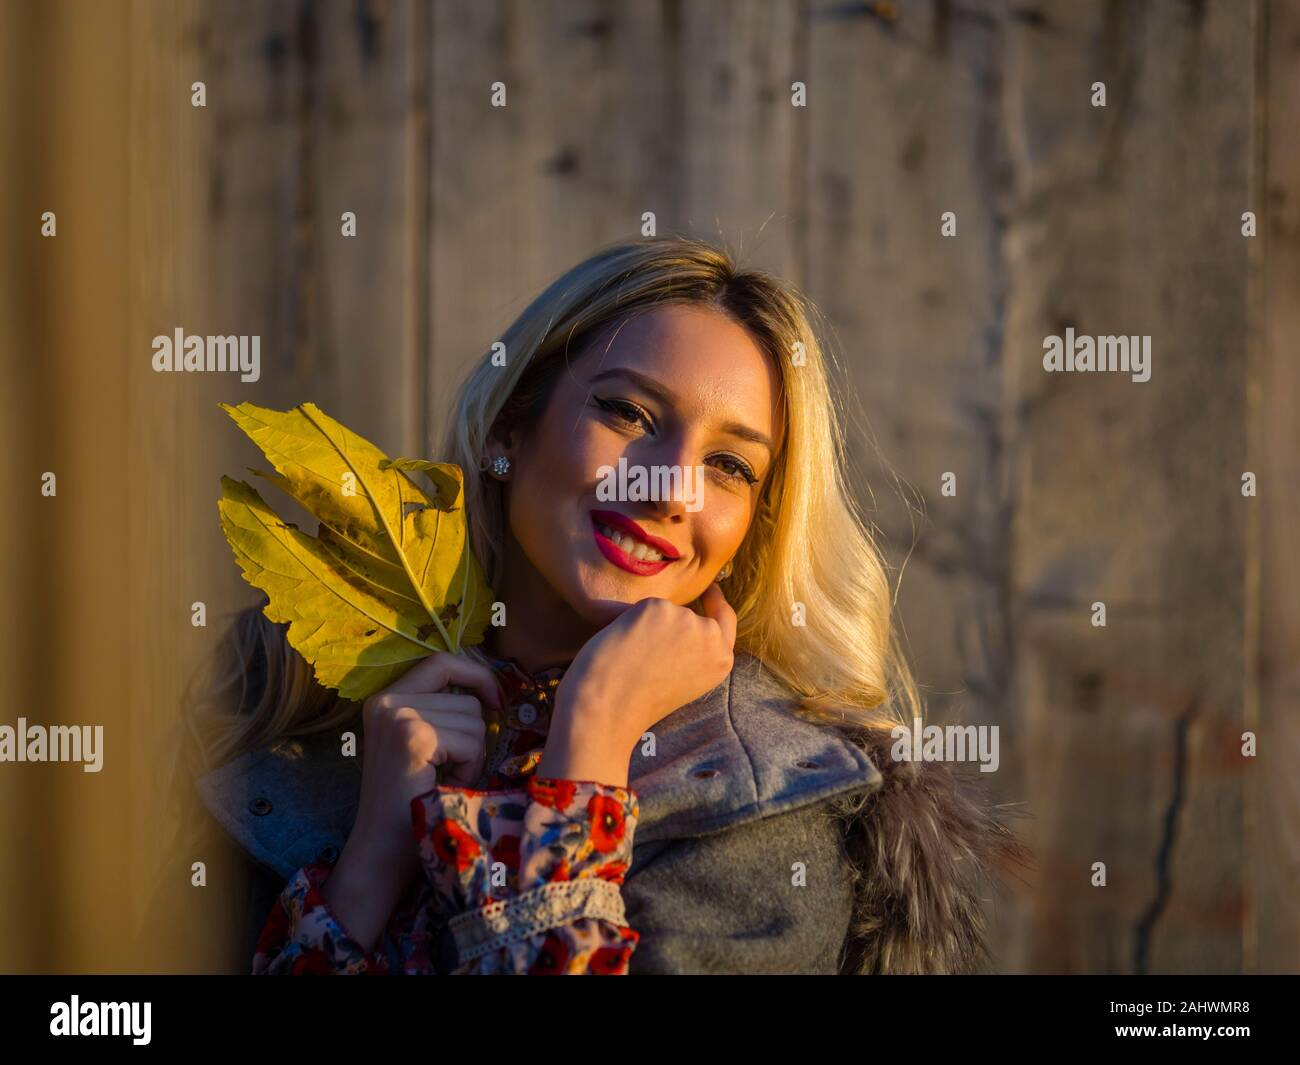 Portrait head and shoulders with Autumn leaf in hand looking at camera eye eyes contact eyeshot sunset warm light Stock Photo